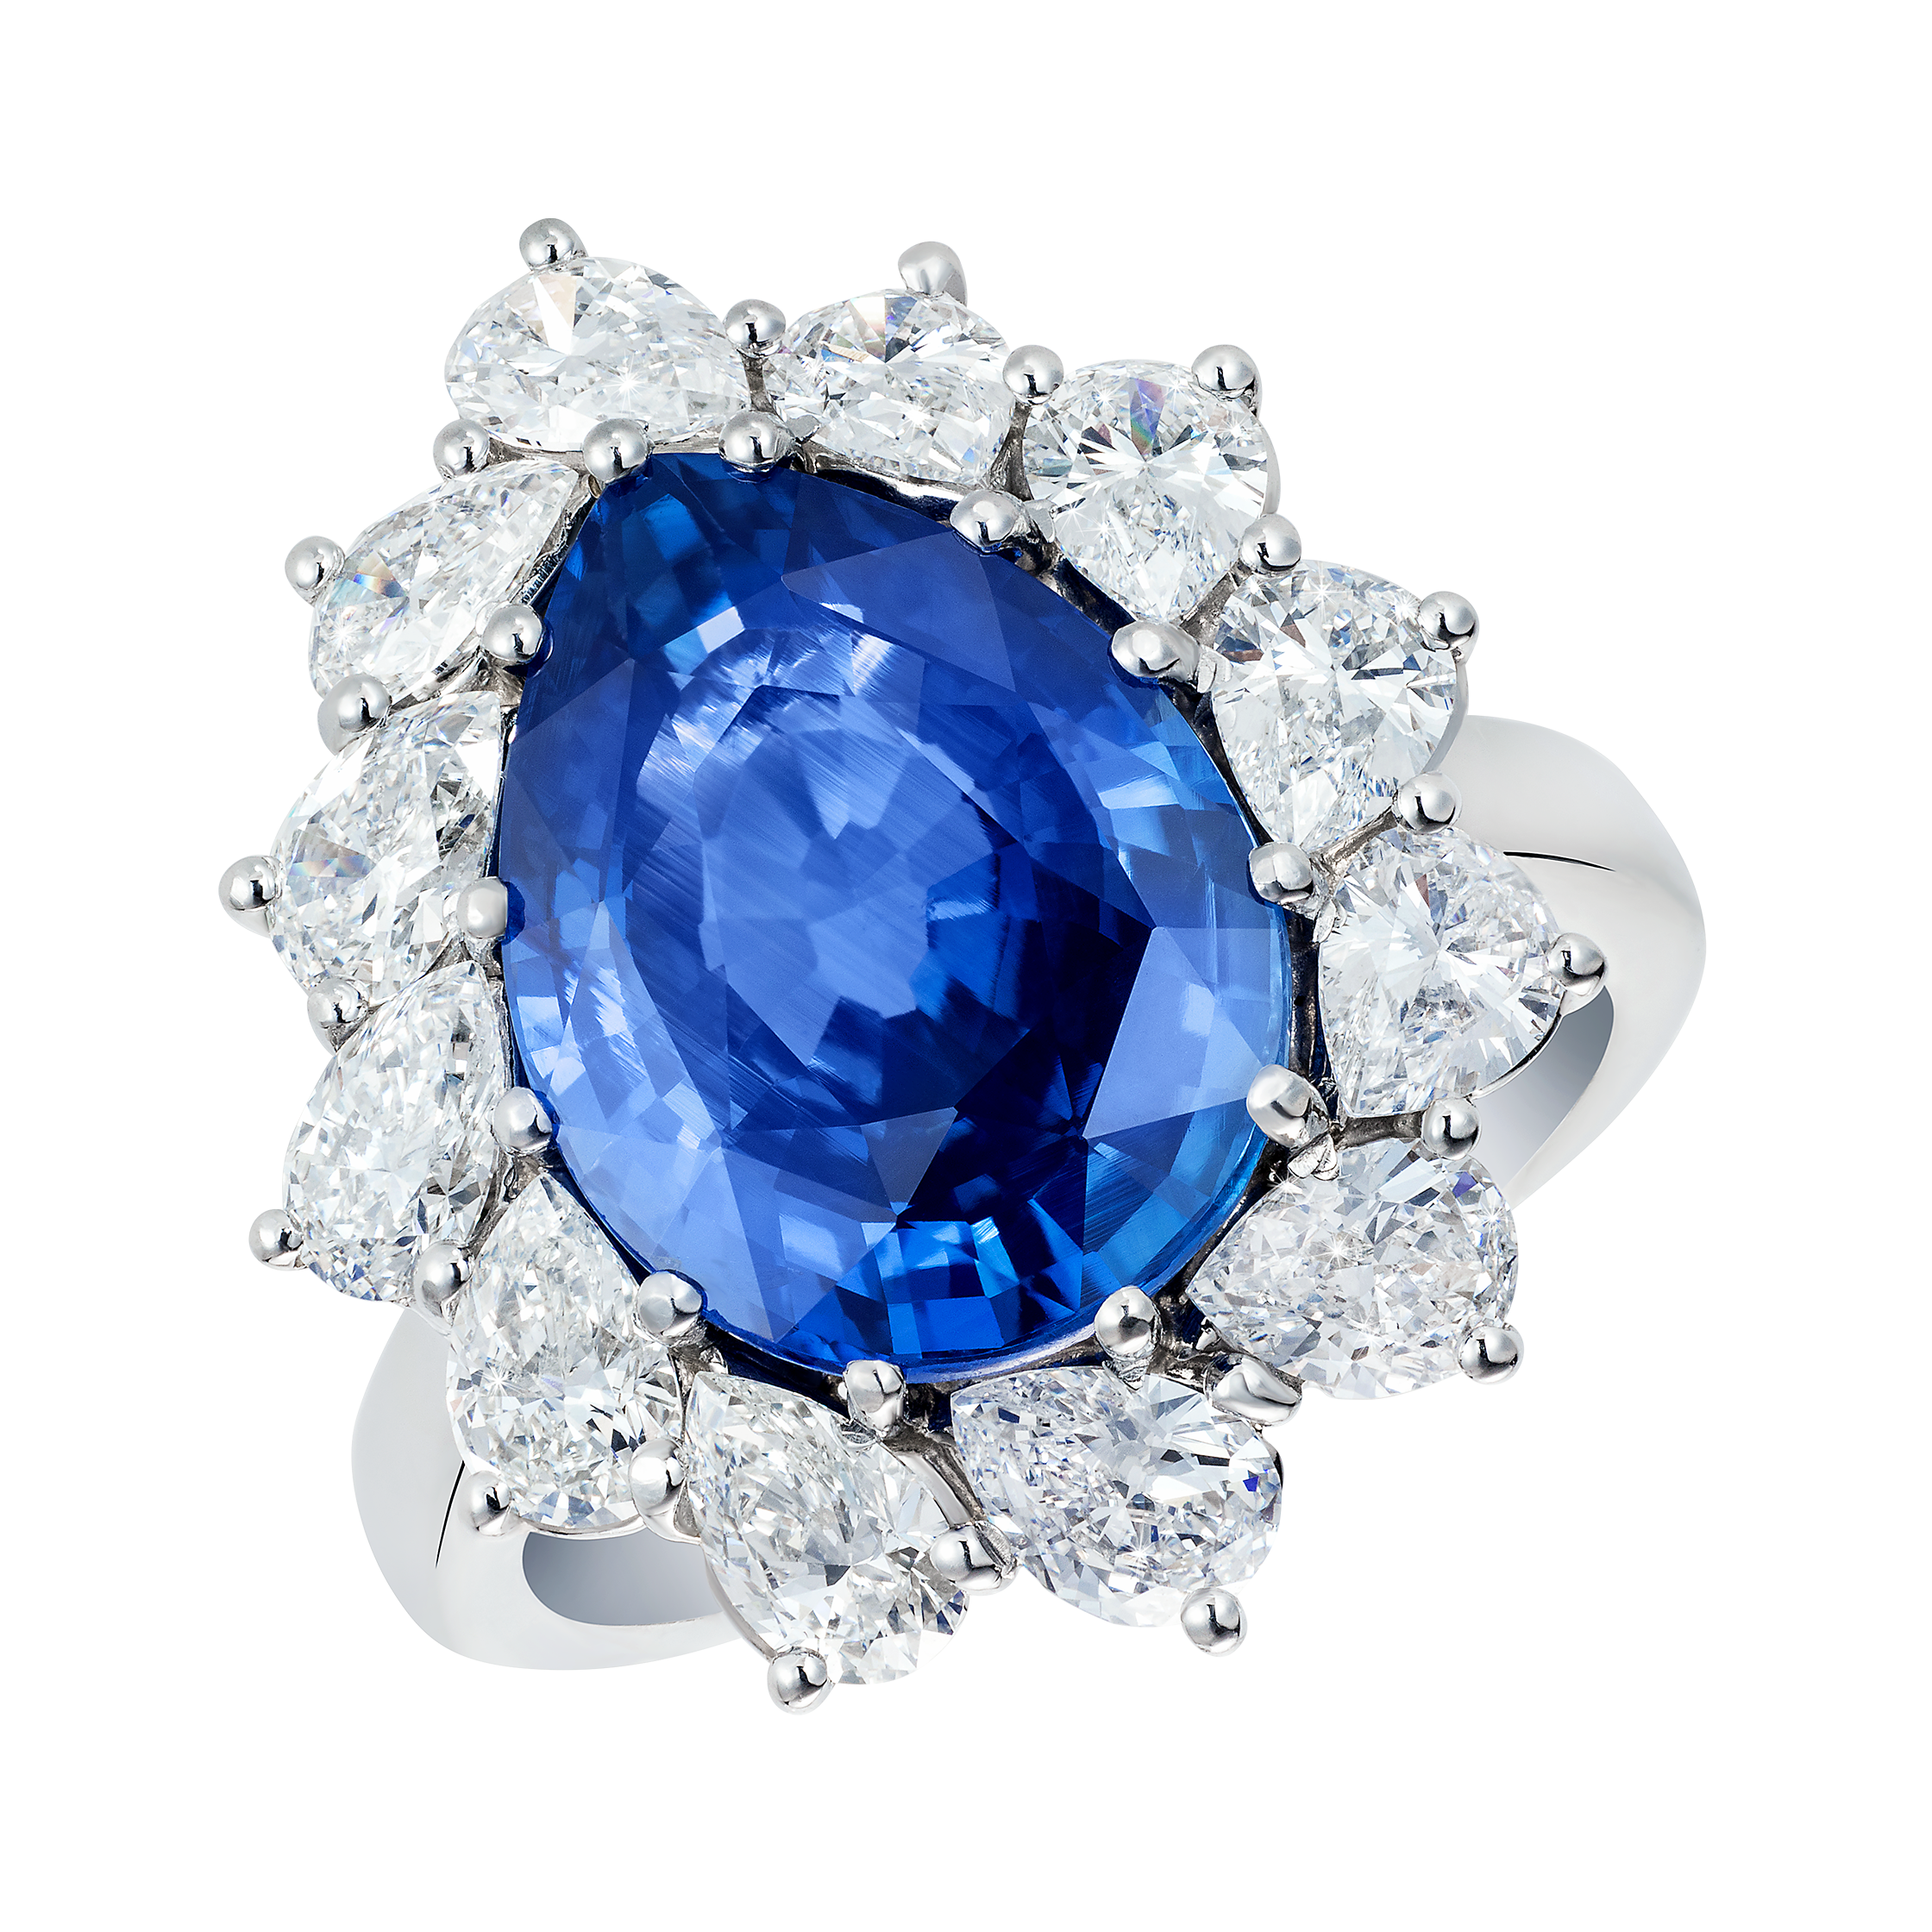 image sapphire productdetail more neelam view to shani crt natural blue click ratti with